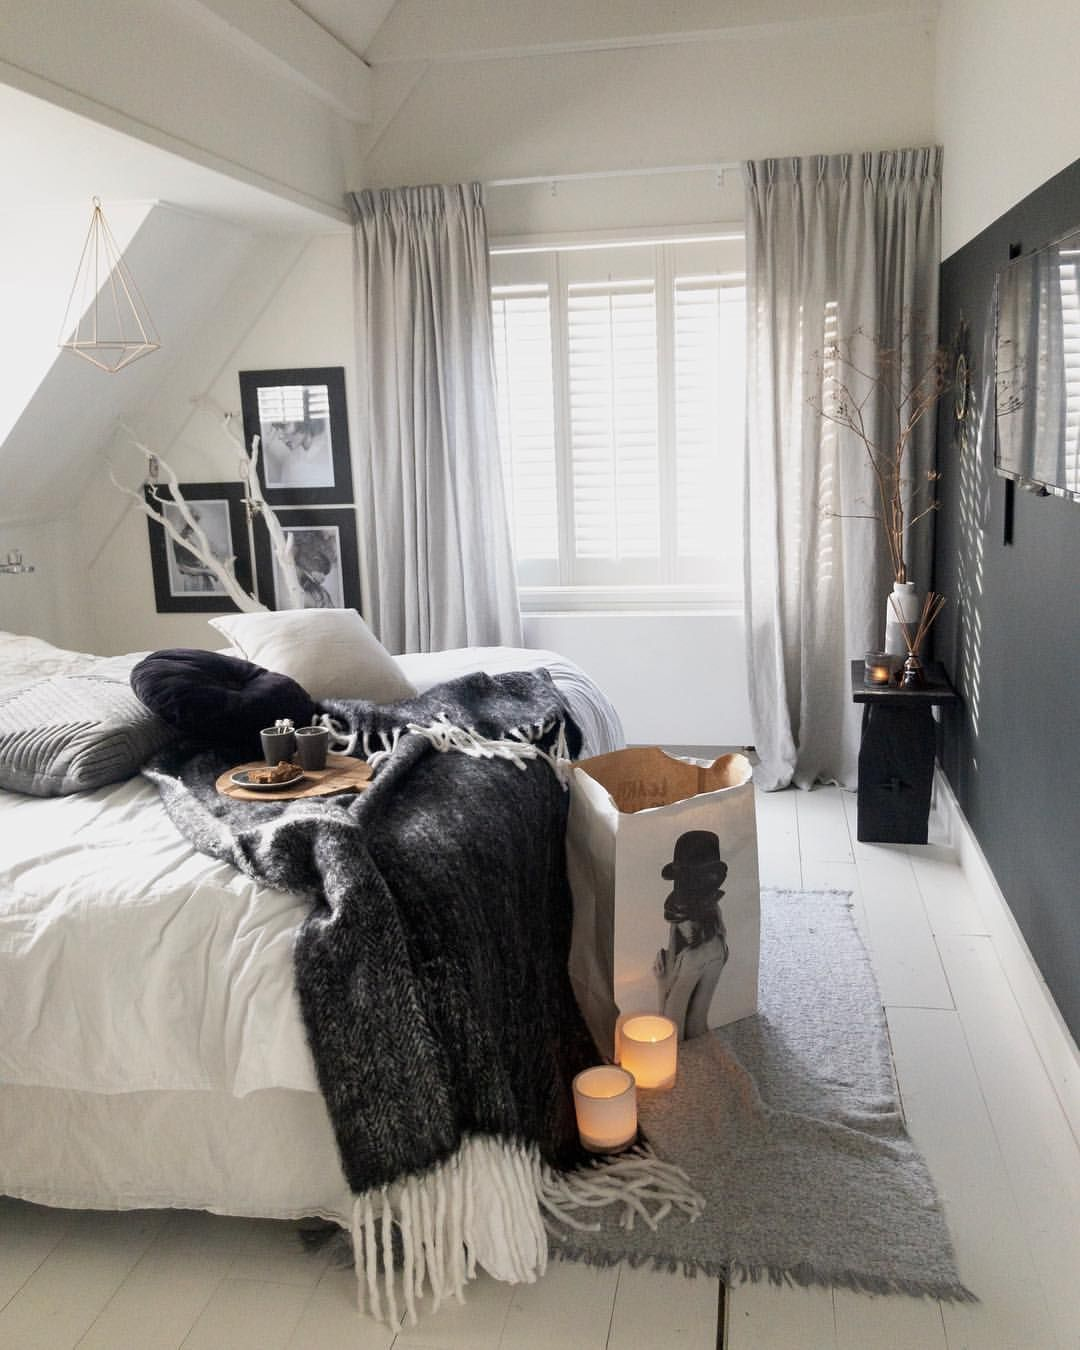 Bed Gordijn Kind Linnen Gordijnen Op De Slaapkamer Bedrooms In 2019 Bedroom